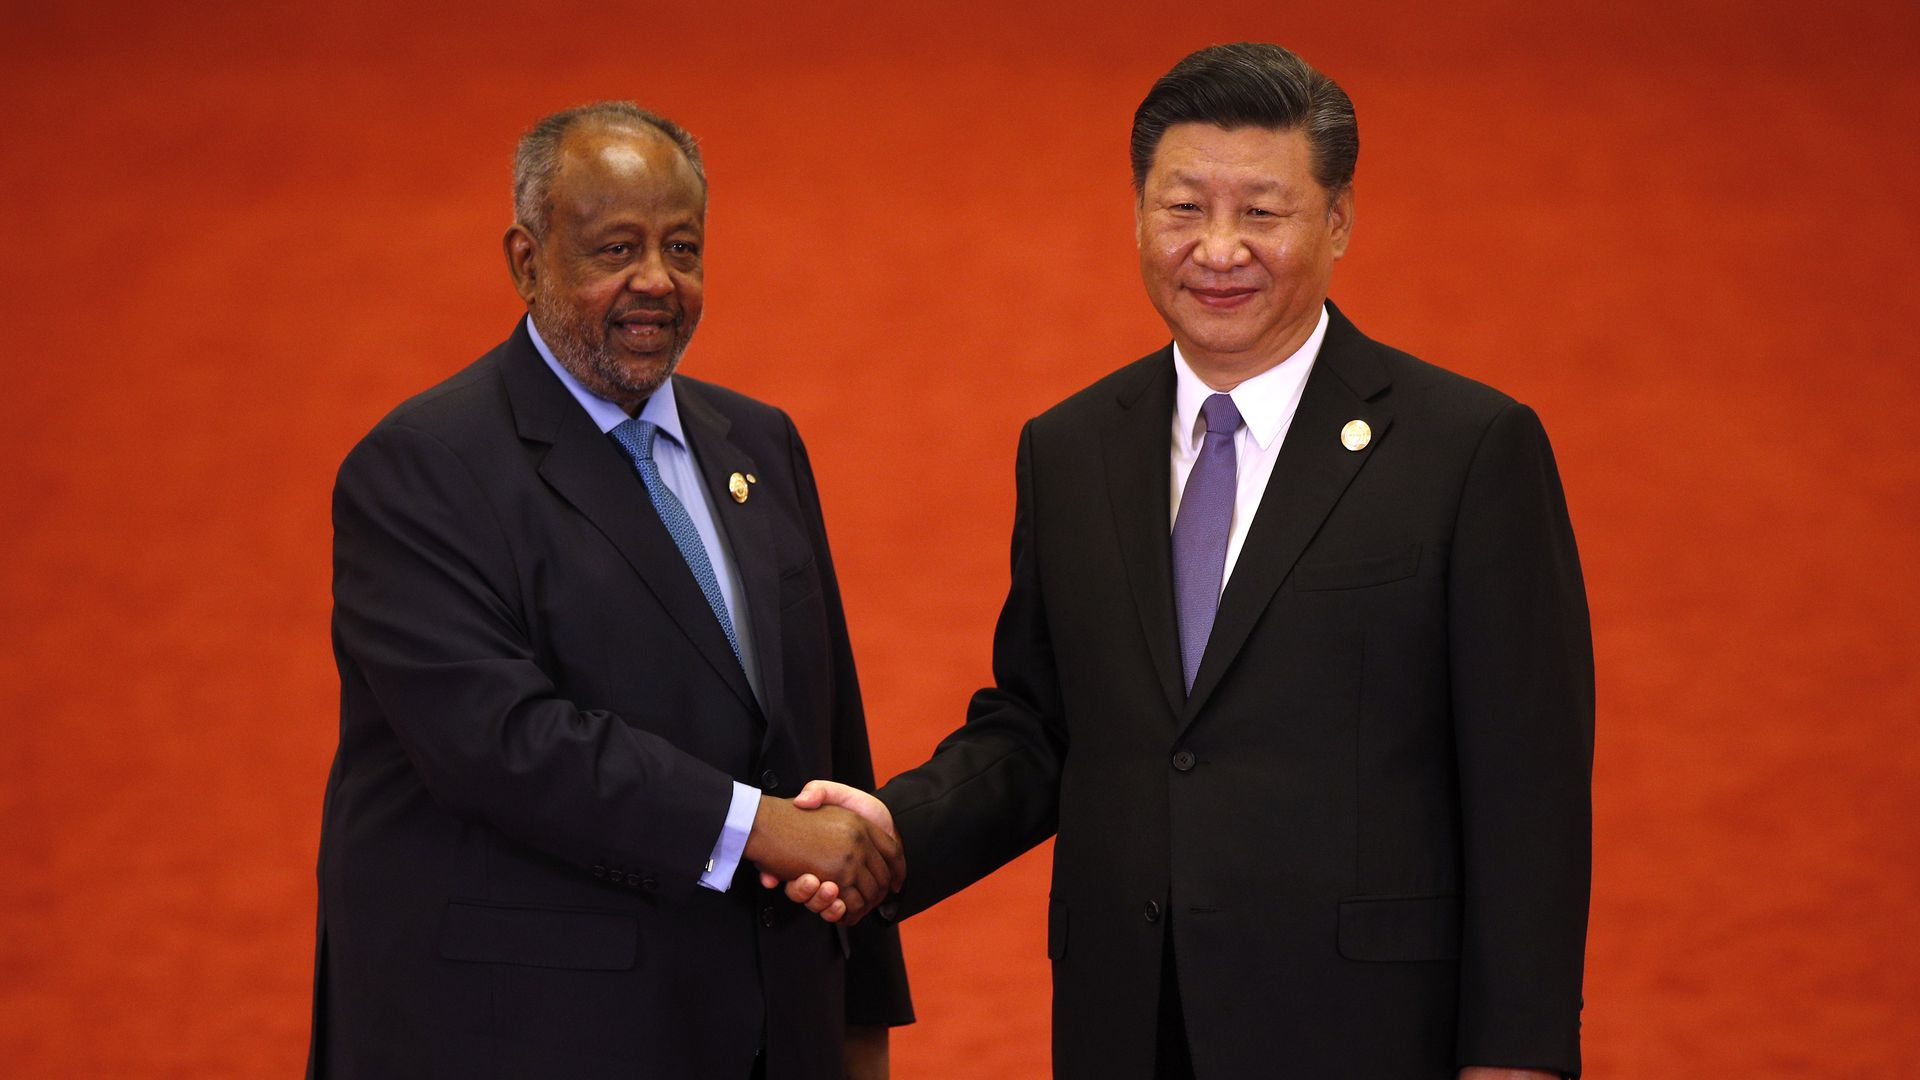 Djibouti's President Ismail Omar Guelleh shakes hands with Chinese President Xi Jinping during the Forum on China-Africa Cooperation on September 3, 2018 in Beijing, China.